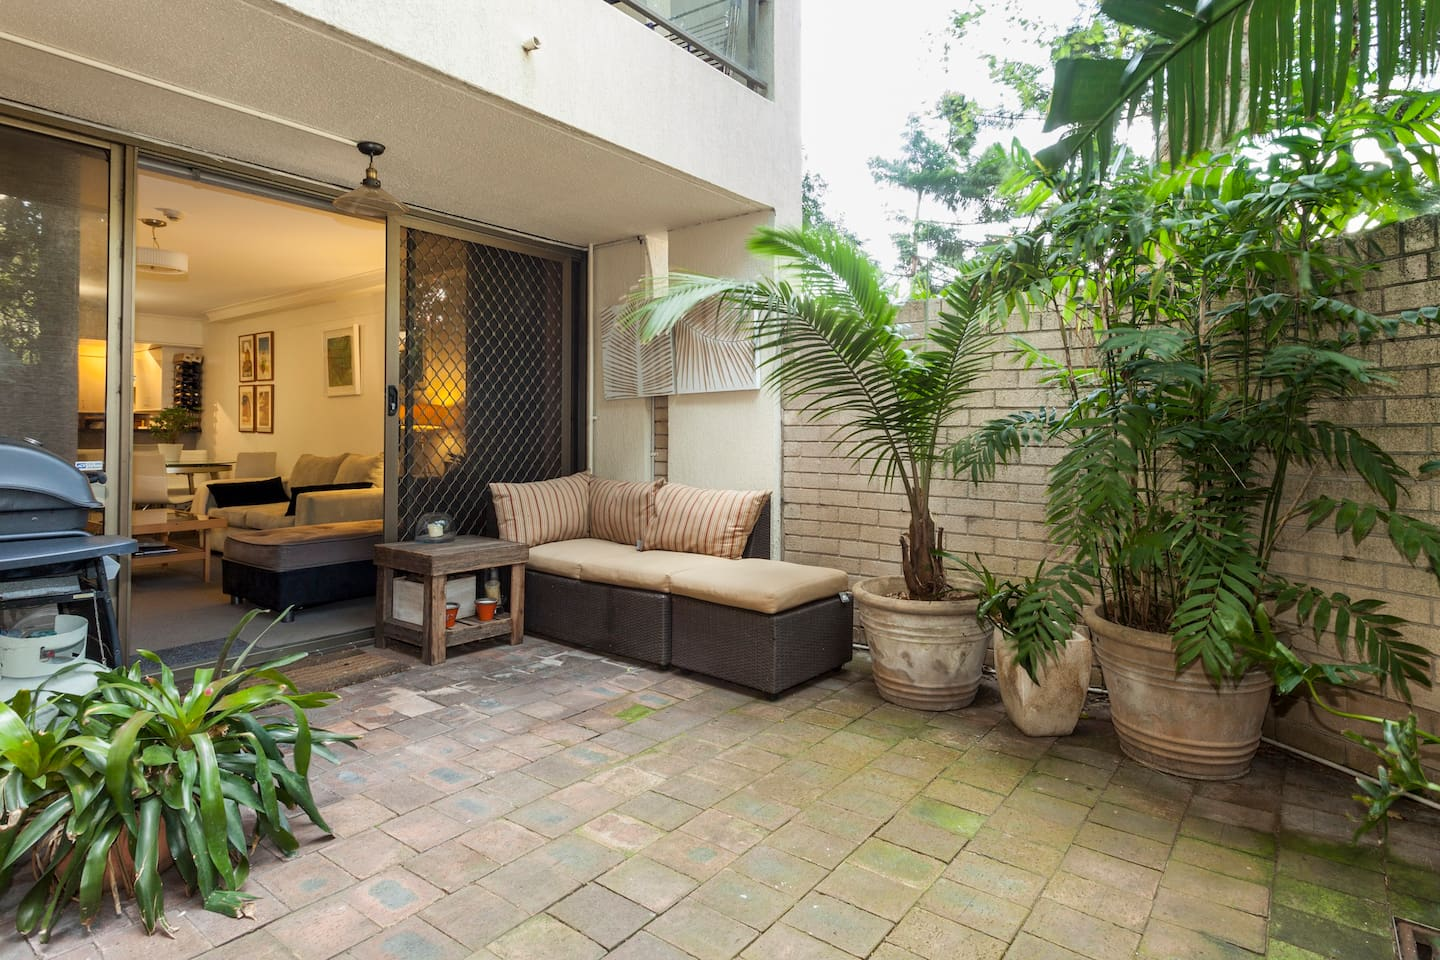 Garden oasis in the heart of the city - welcome to my home!